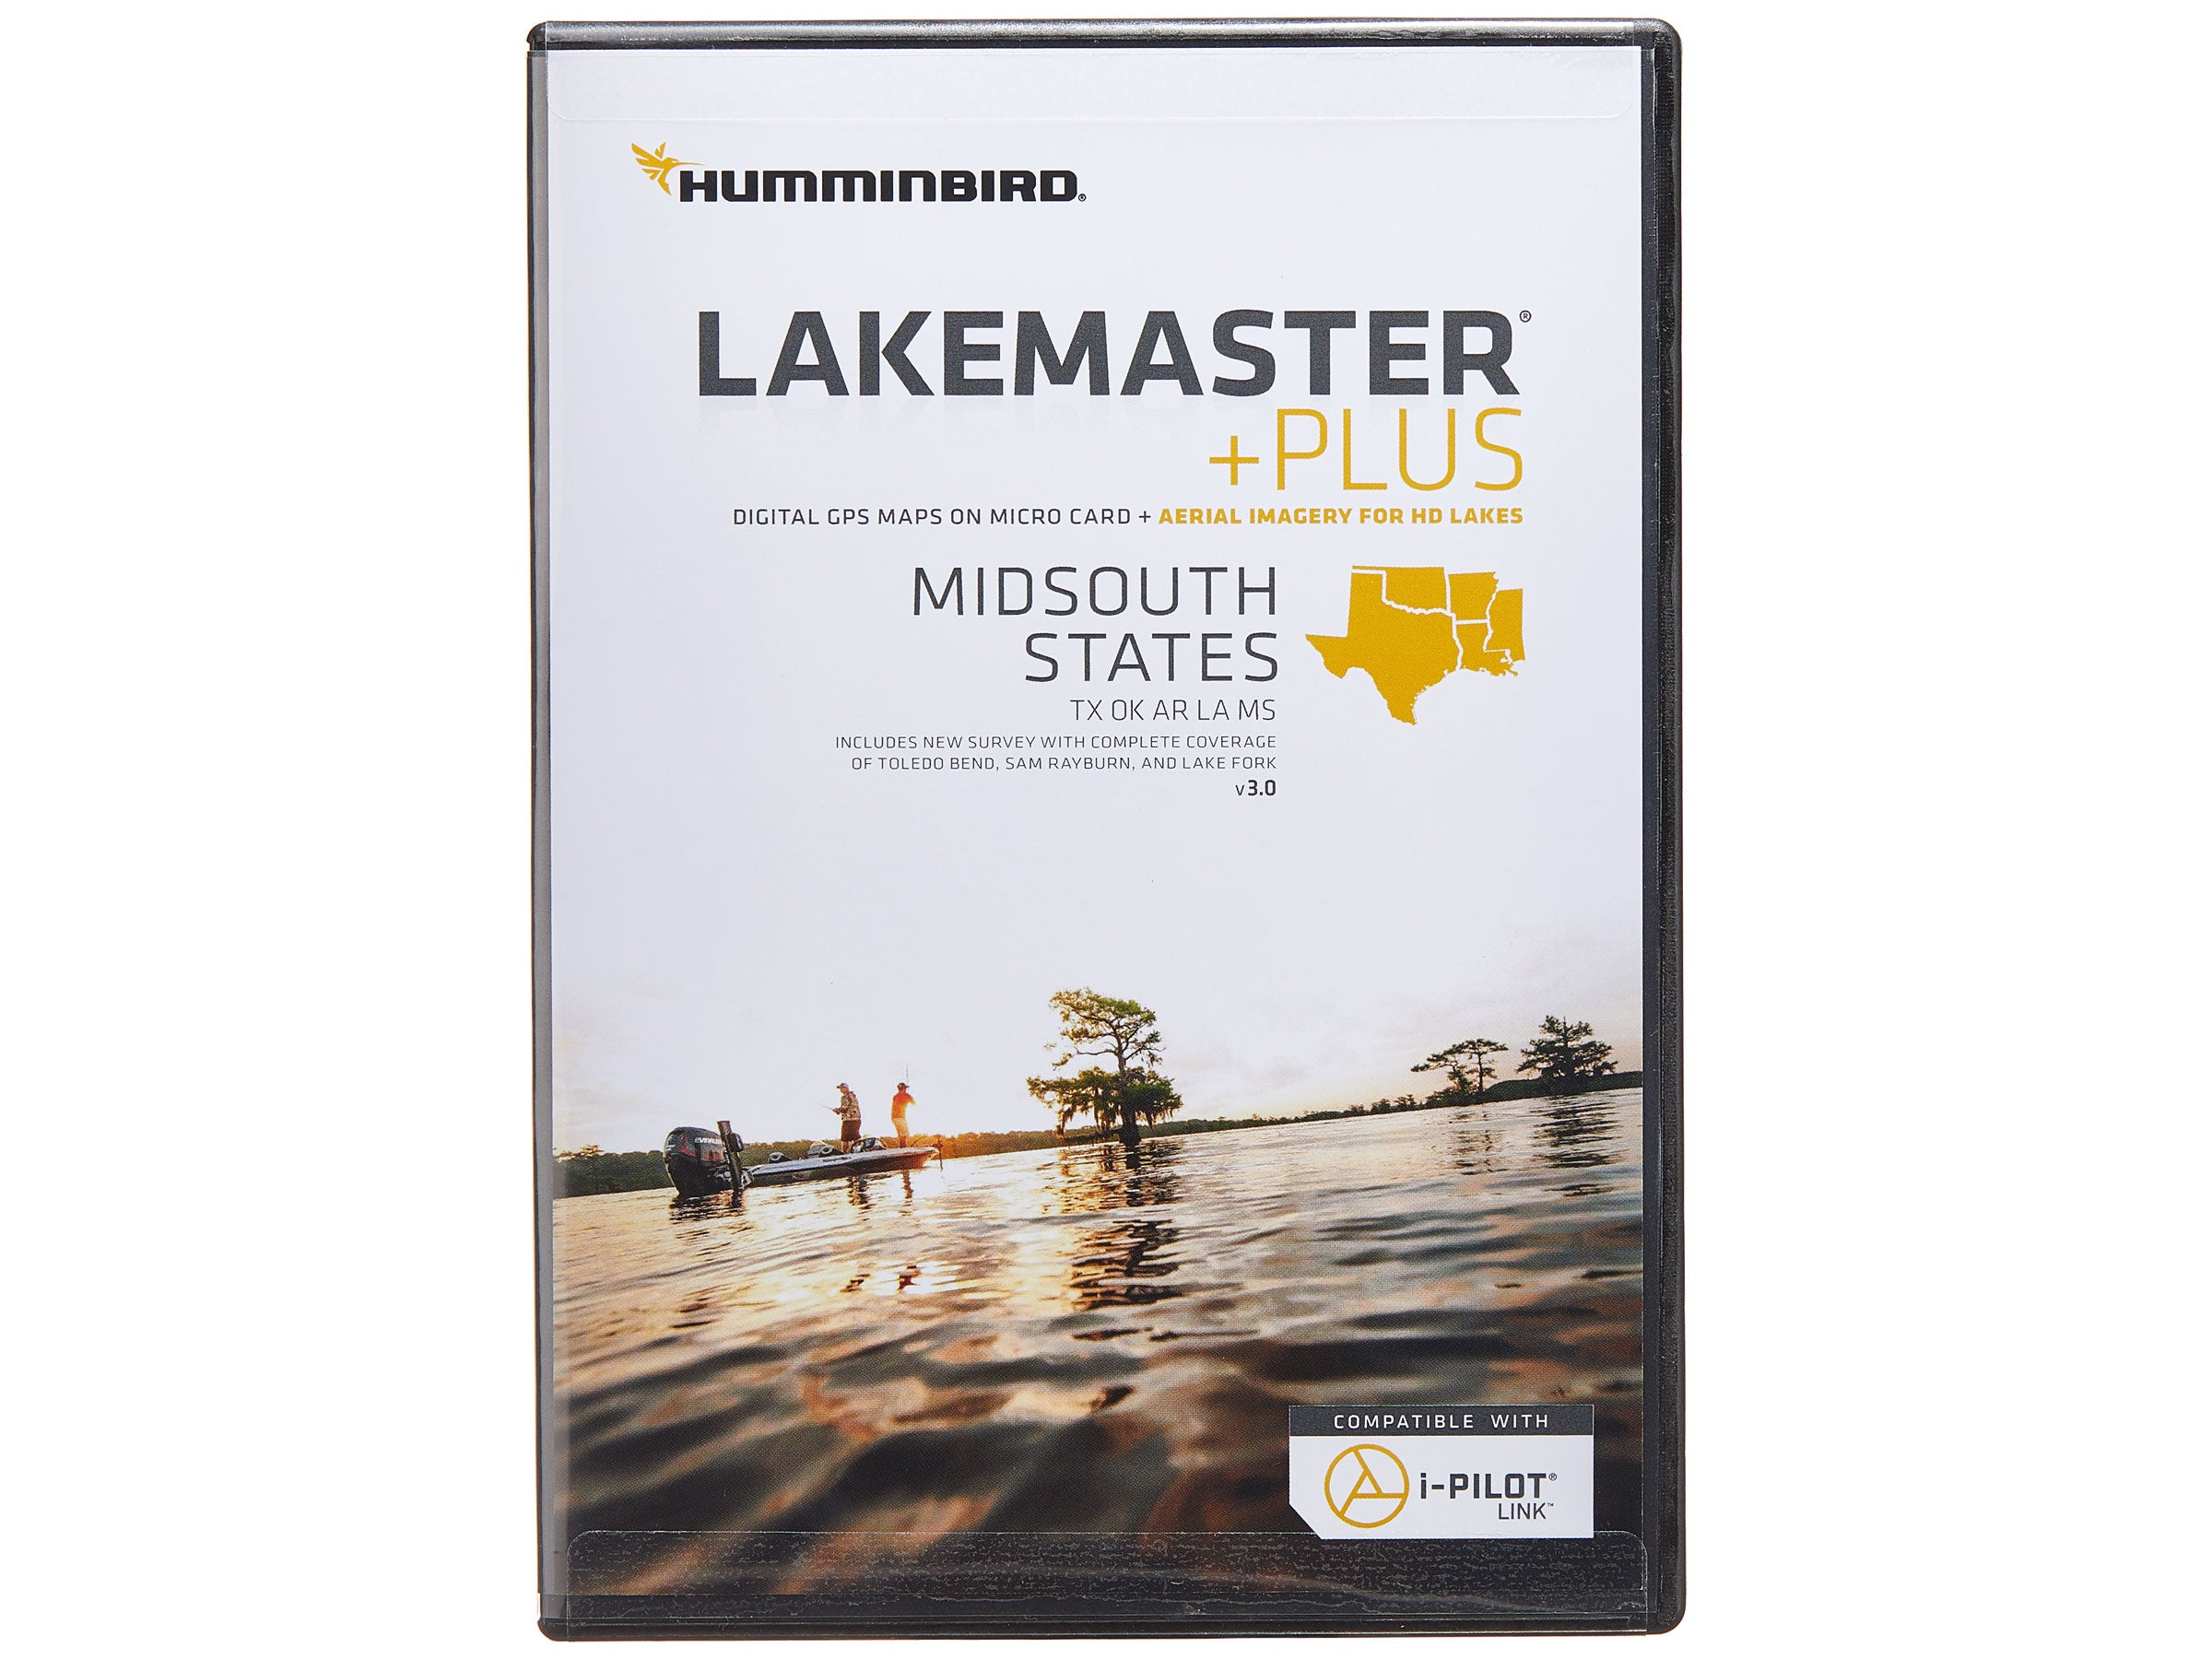 Humminbird Lakemaster Plus Digital Charts - Tackle Warehouse on